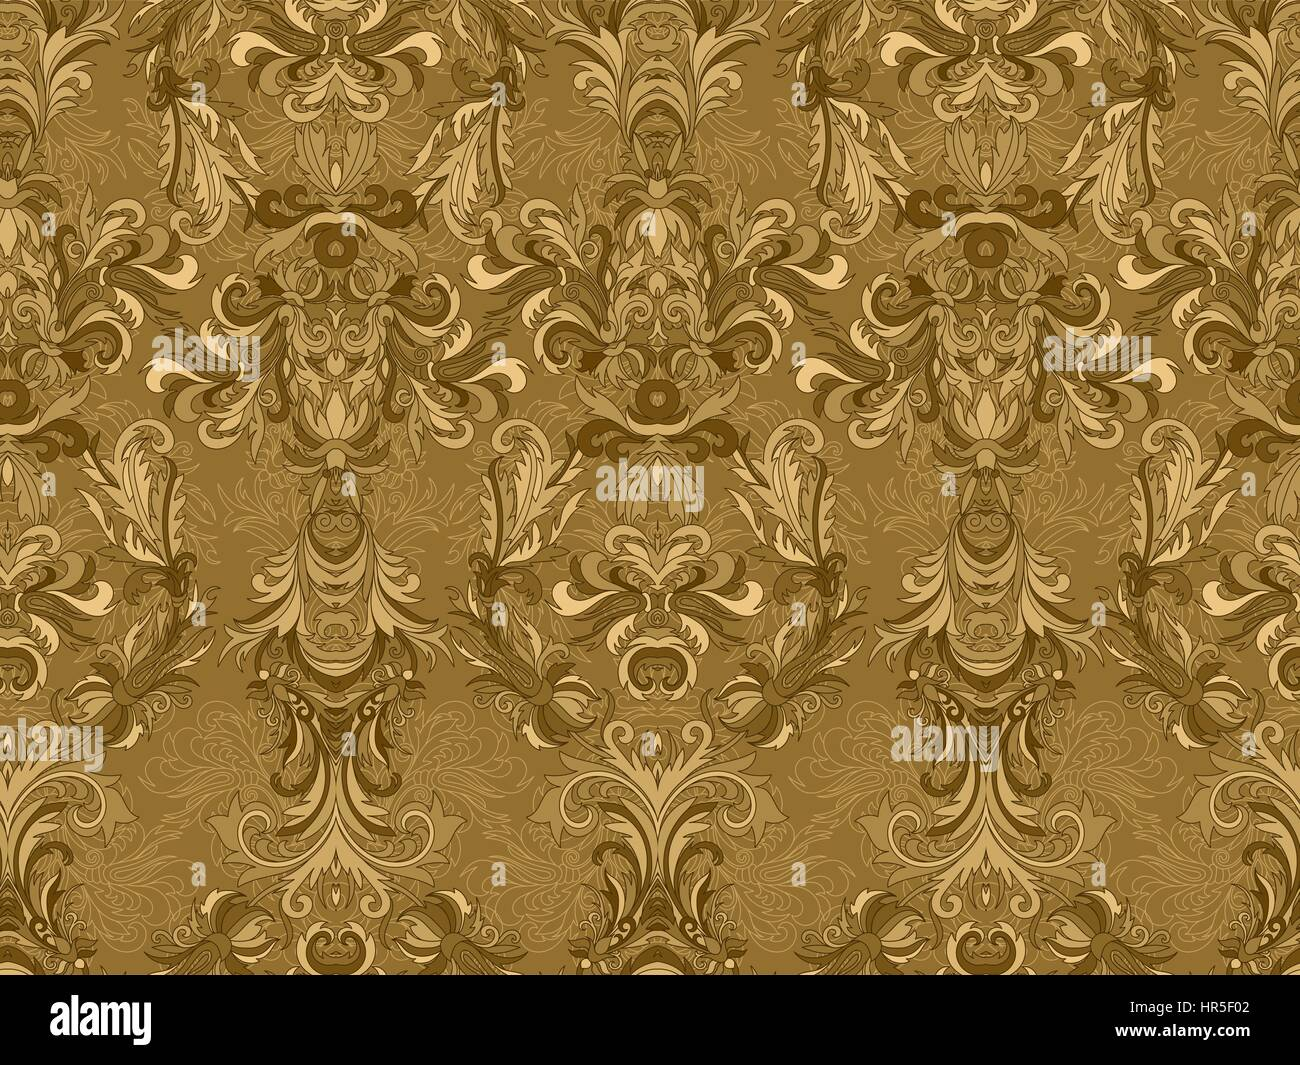 Luxury Floral Damask Wallpaper Seamless Pattern Background Vector Illustration